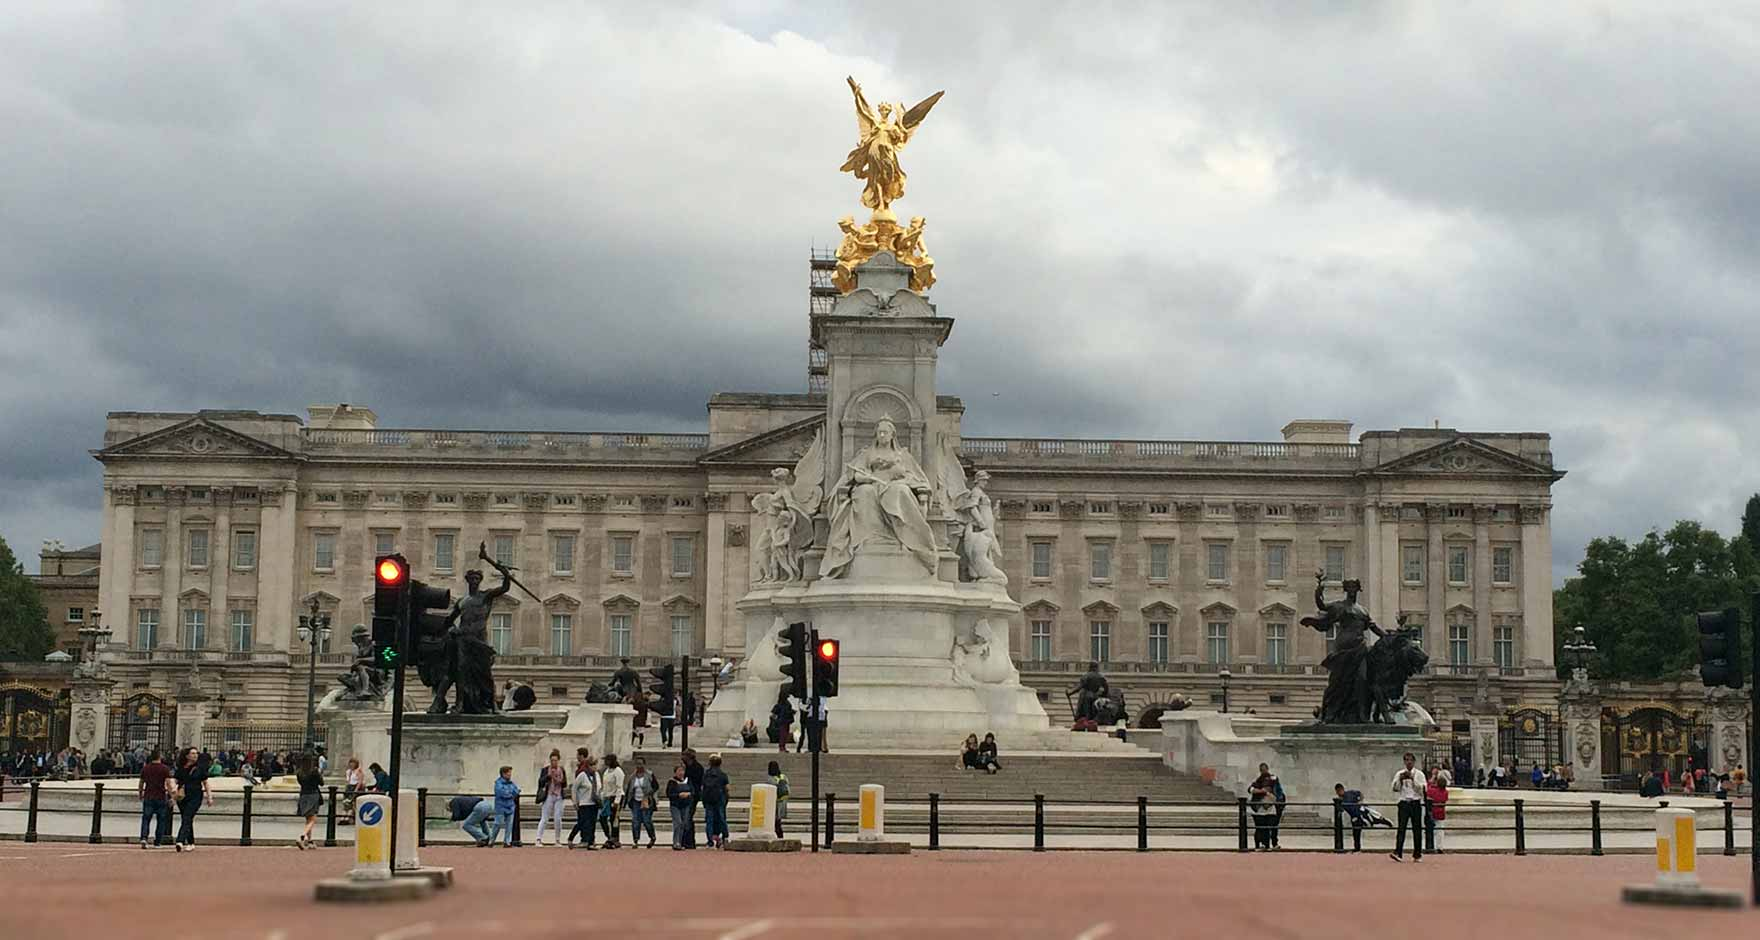 Front view of Buckingham Palace